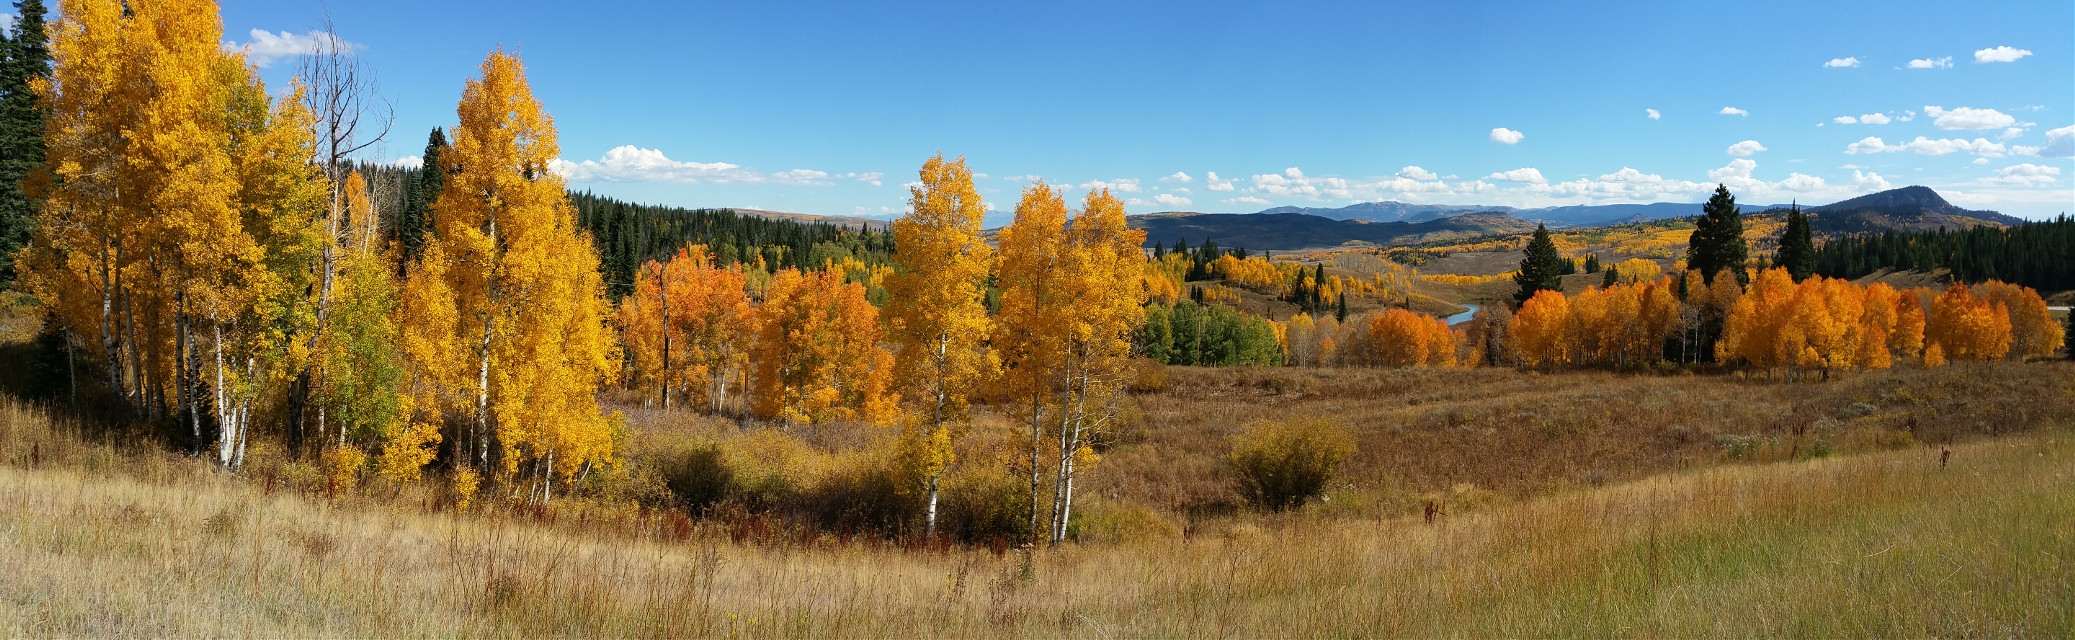 #nature   #photography #fallcolors #rockymountains #fall #aspen #colors #wooden #forest #mountains #trees #red #colorful